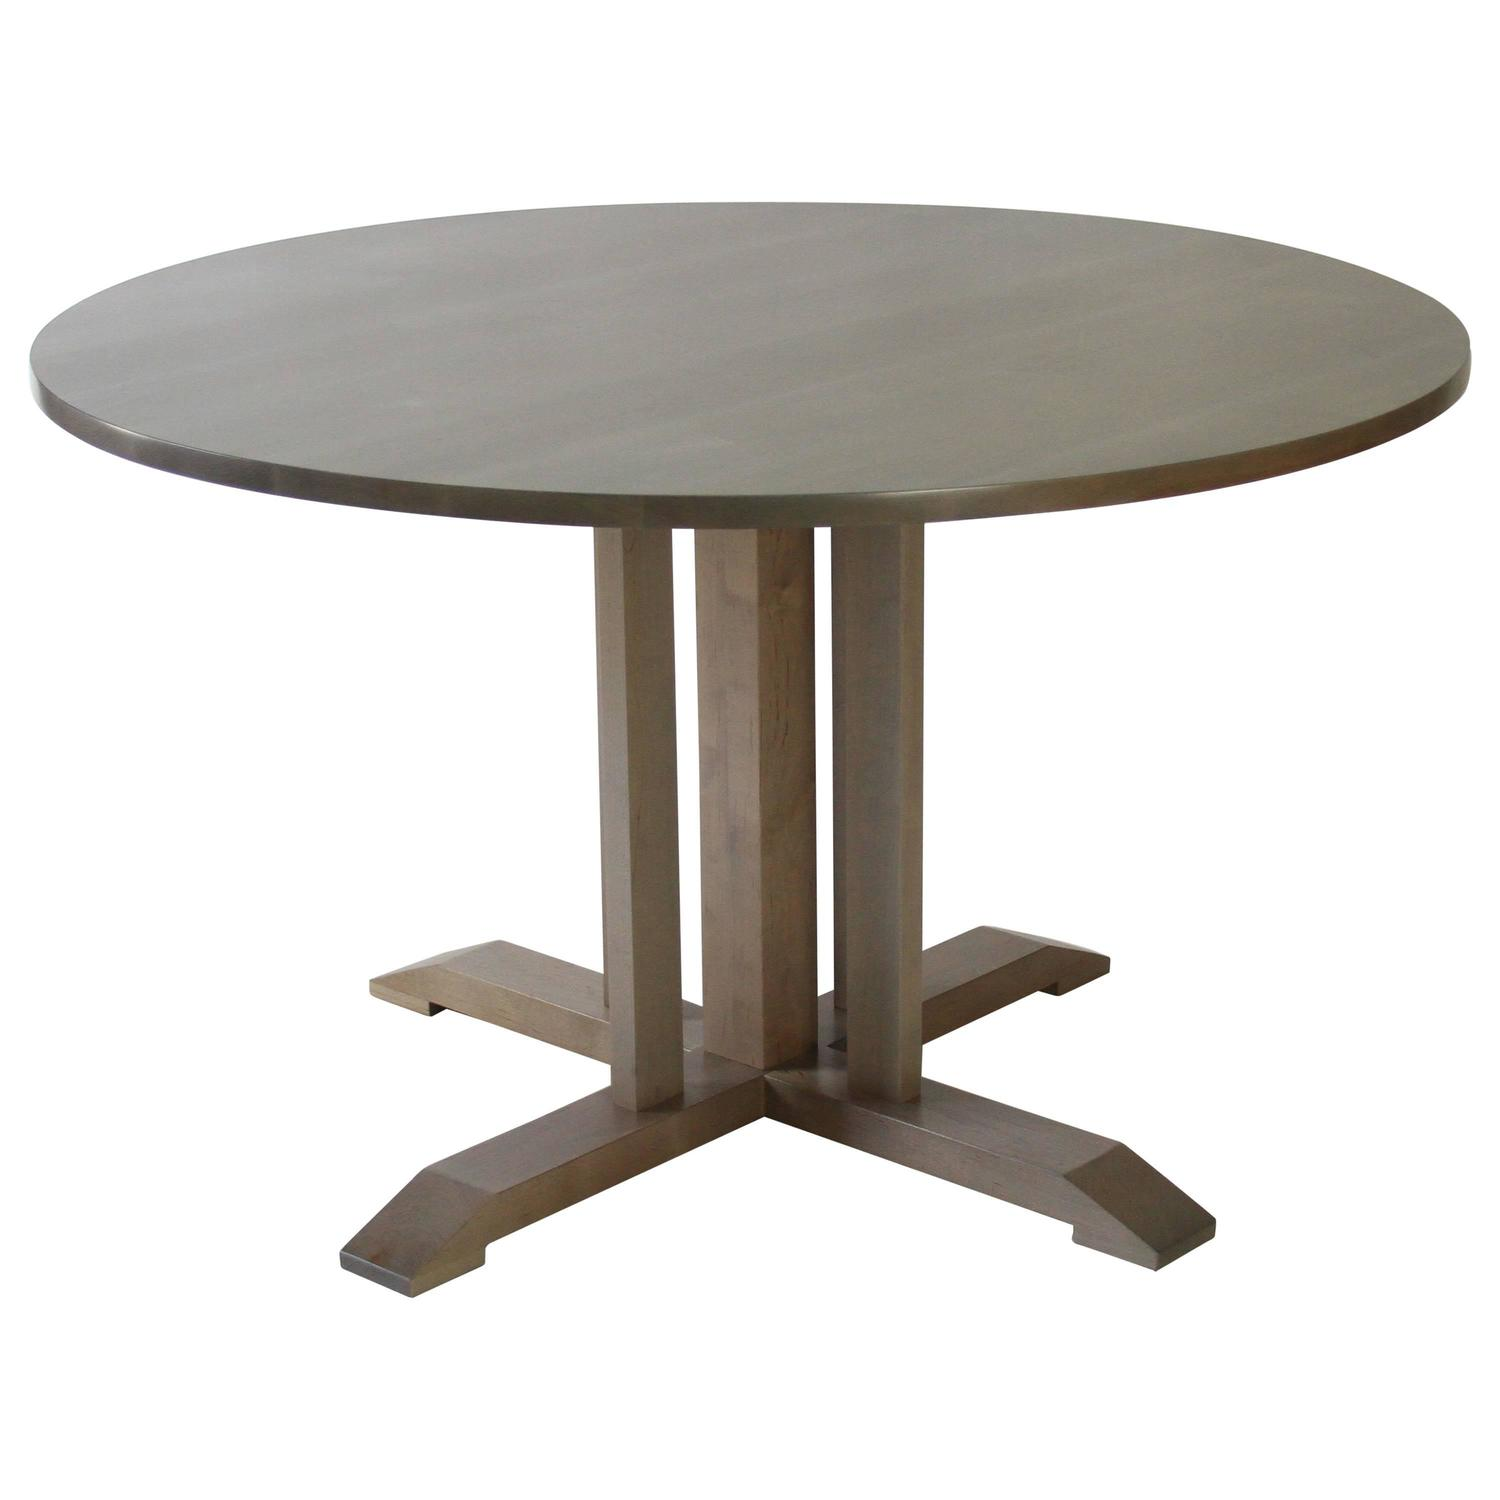 round pedestal dining table salt pond 39 warm grey 39 stain solid maple for sale at 1stdibs. Black Bedroom Furniture Sets. Home Design Ideas